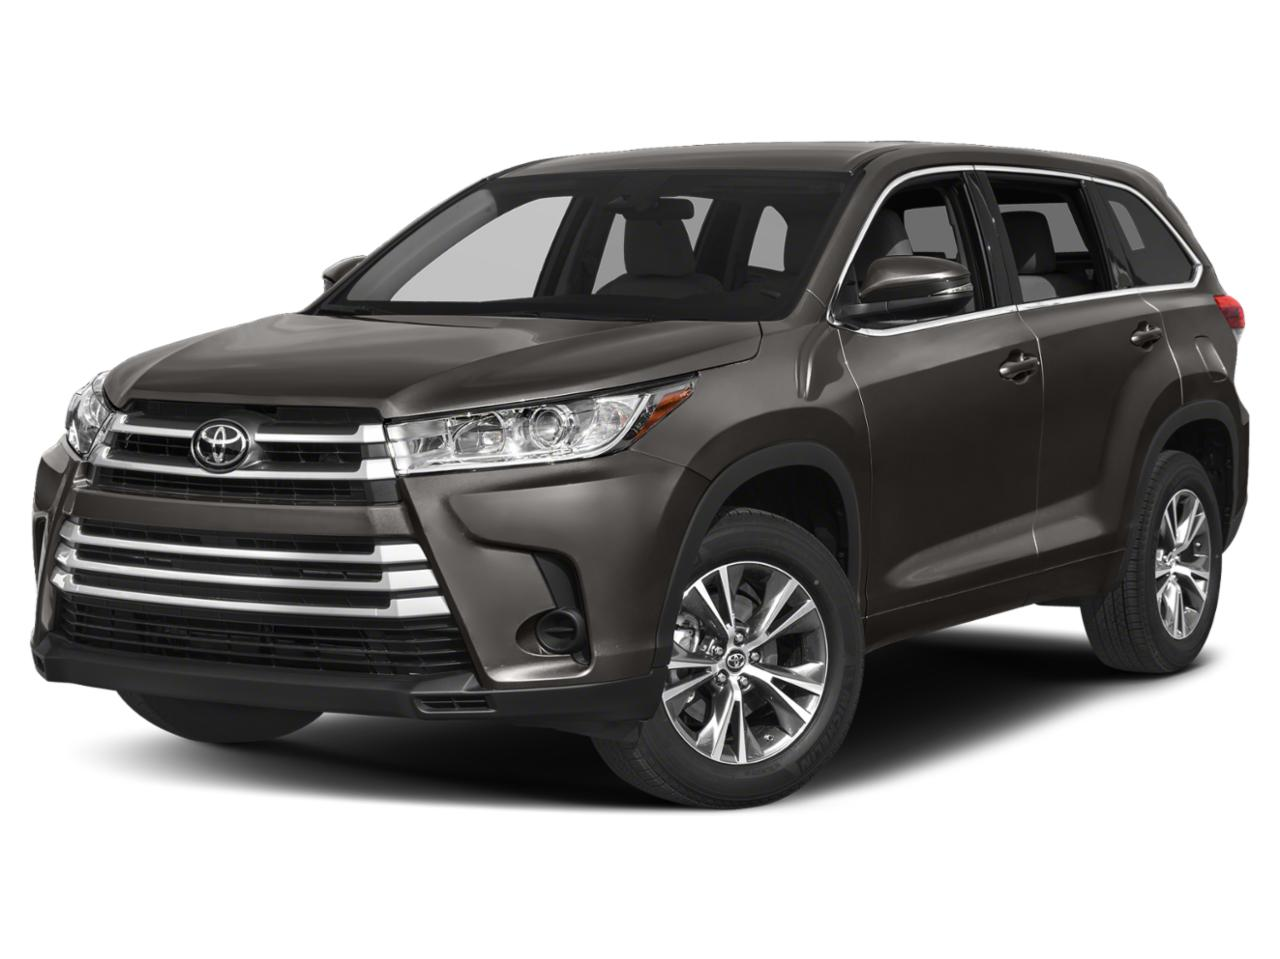 2019 Toyota Highlander Vehicle Photo in Lewisville, TX 75067